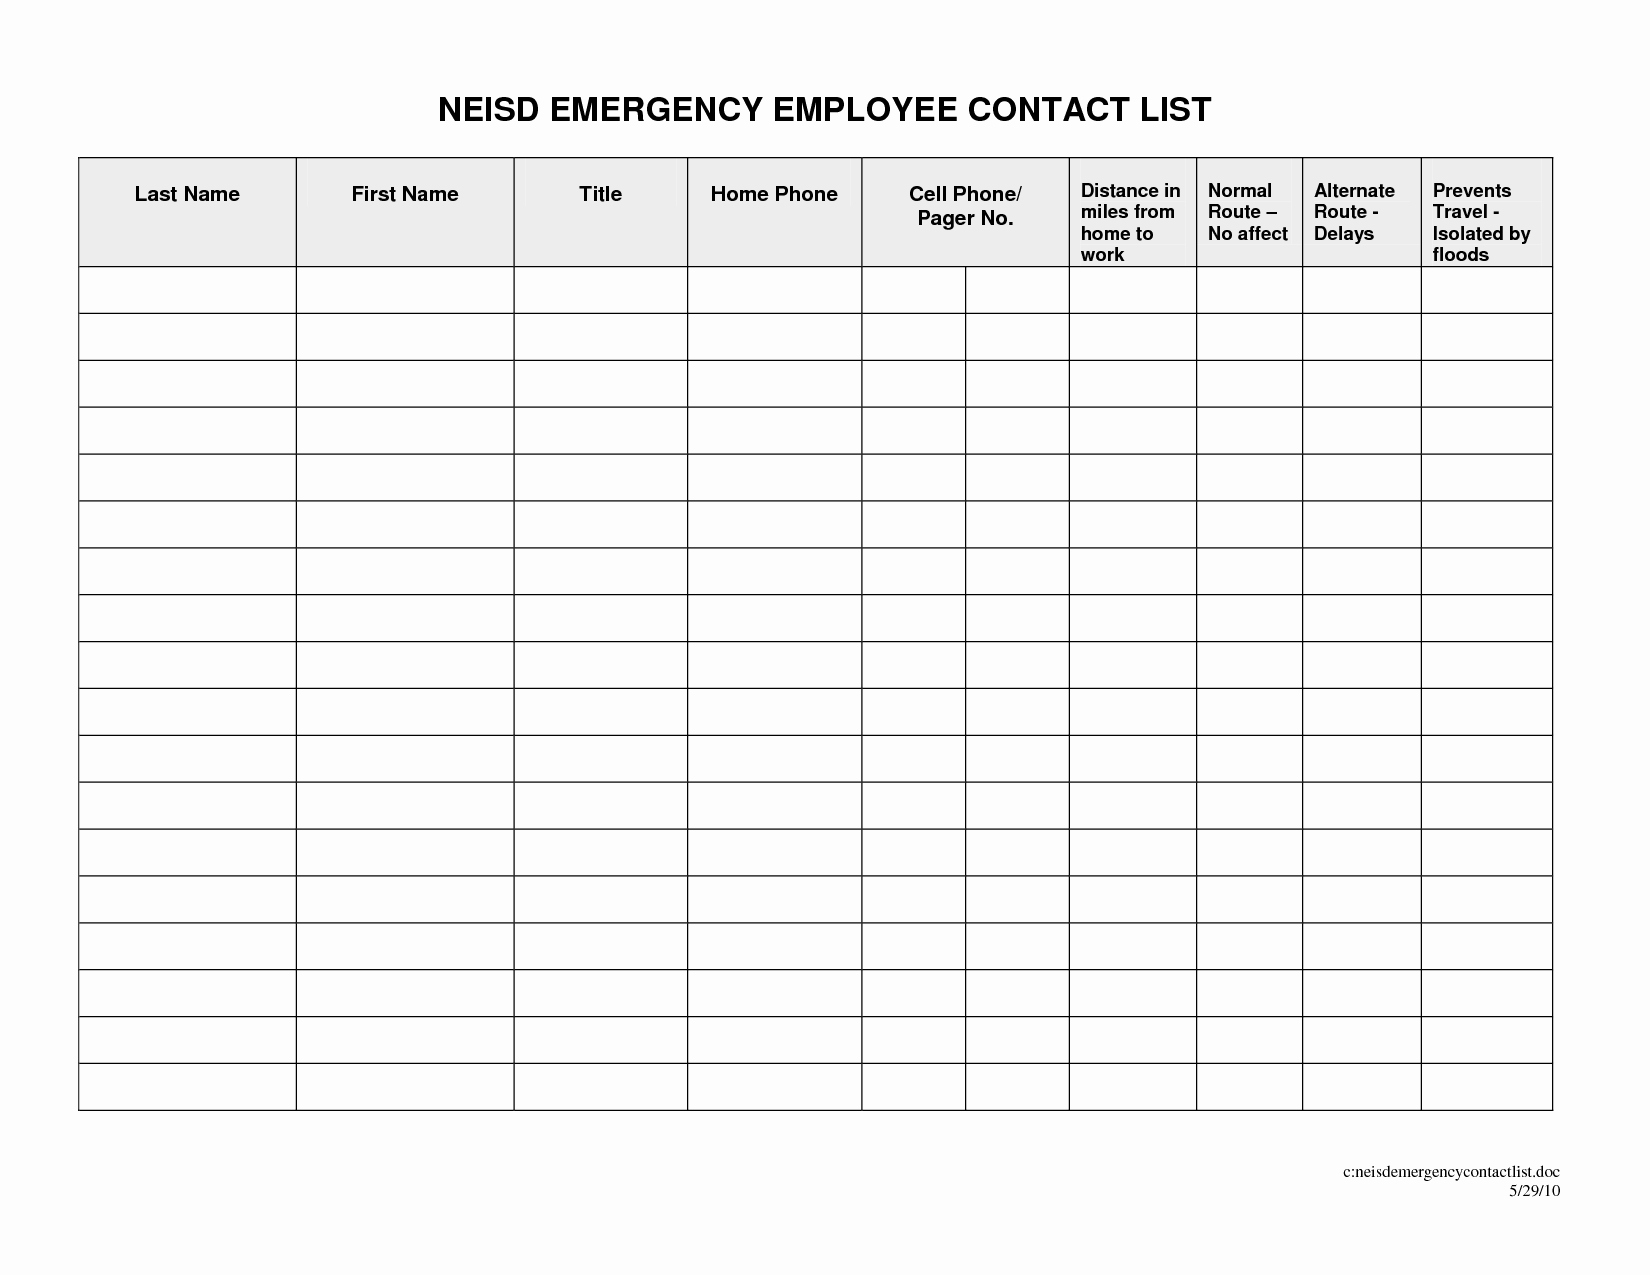 Emergency Contact List for Business Beautiful Business Contact List Template Portablegasgrillweber